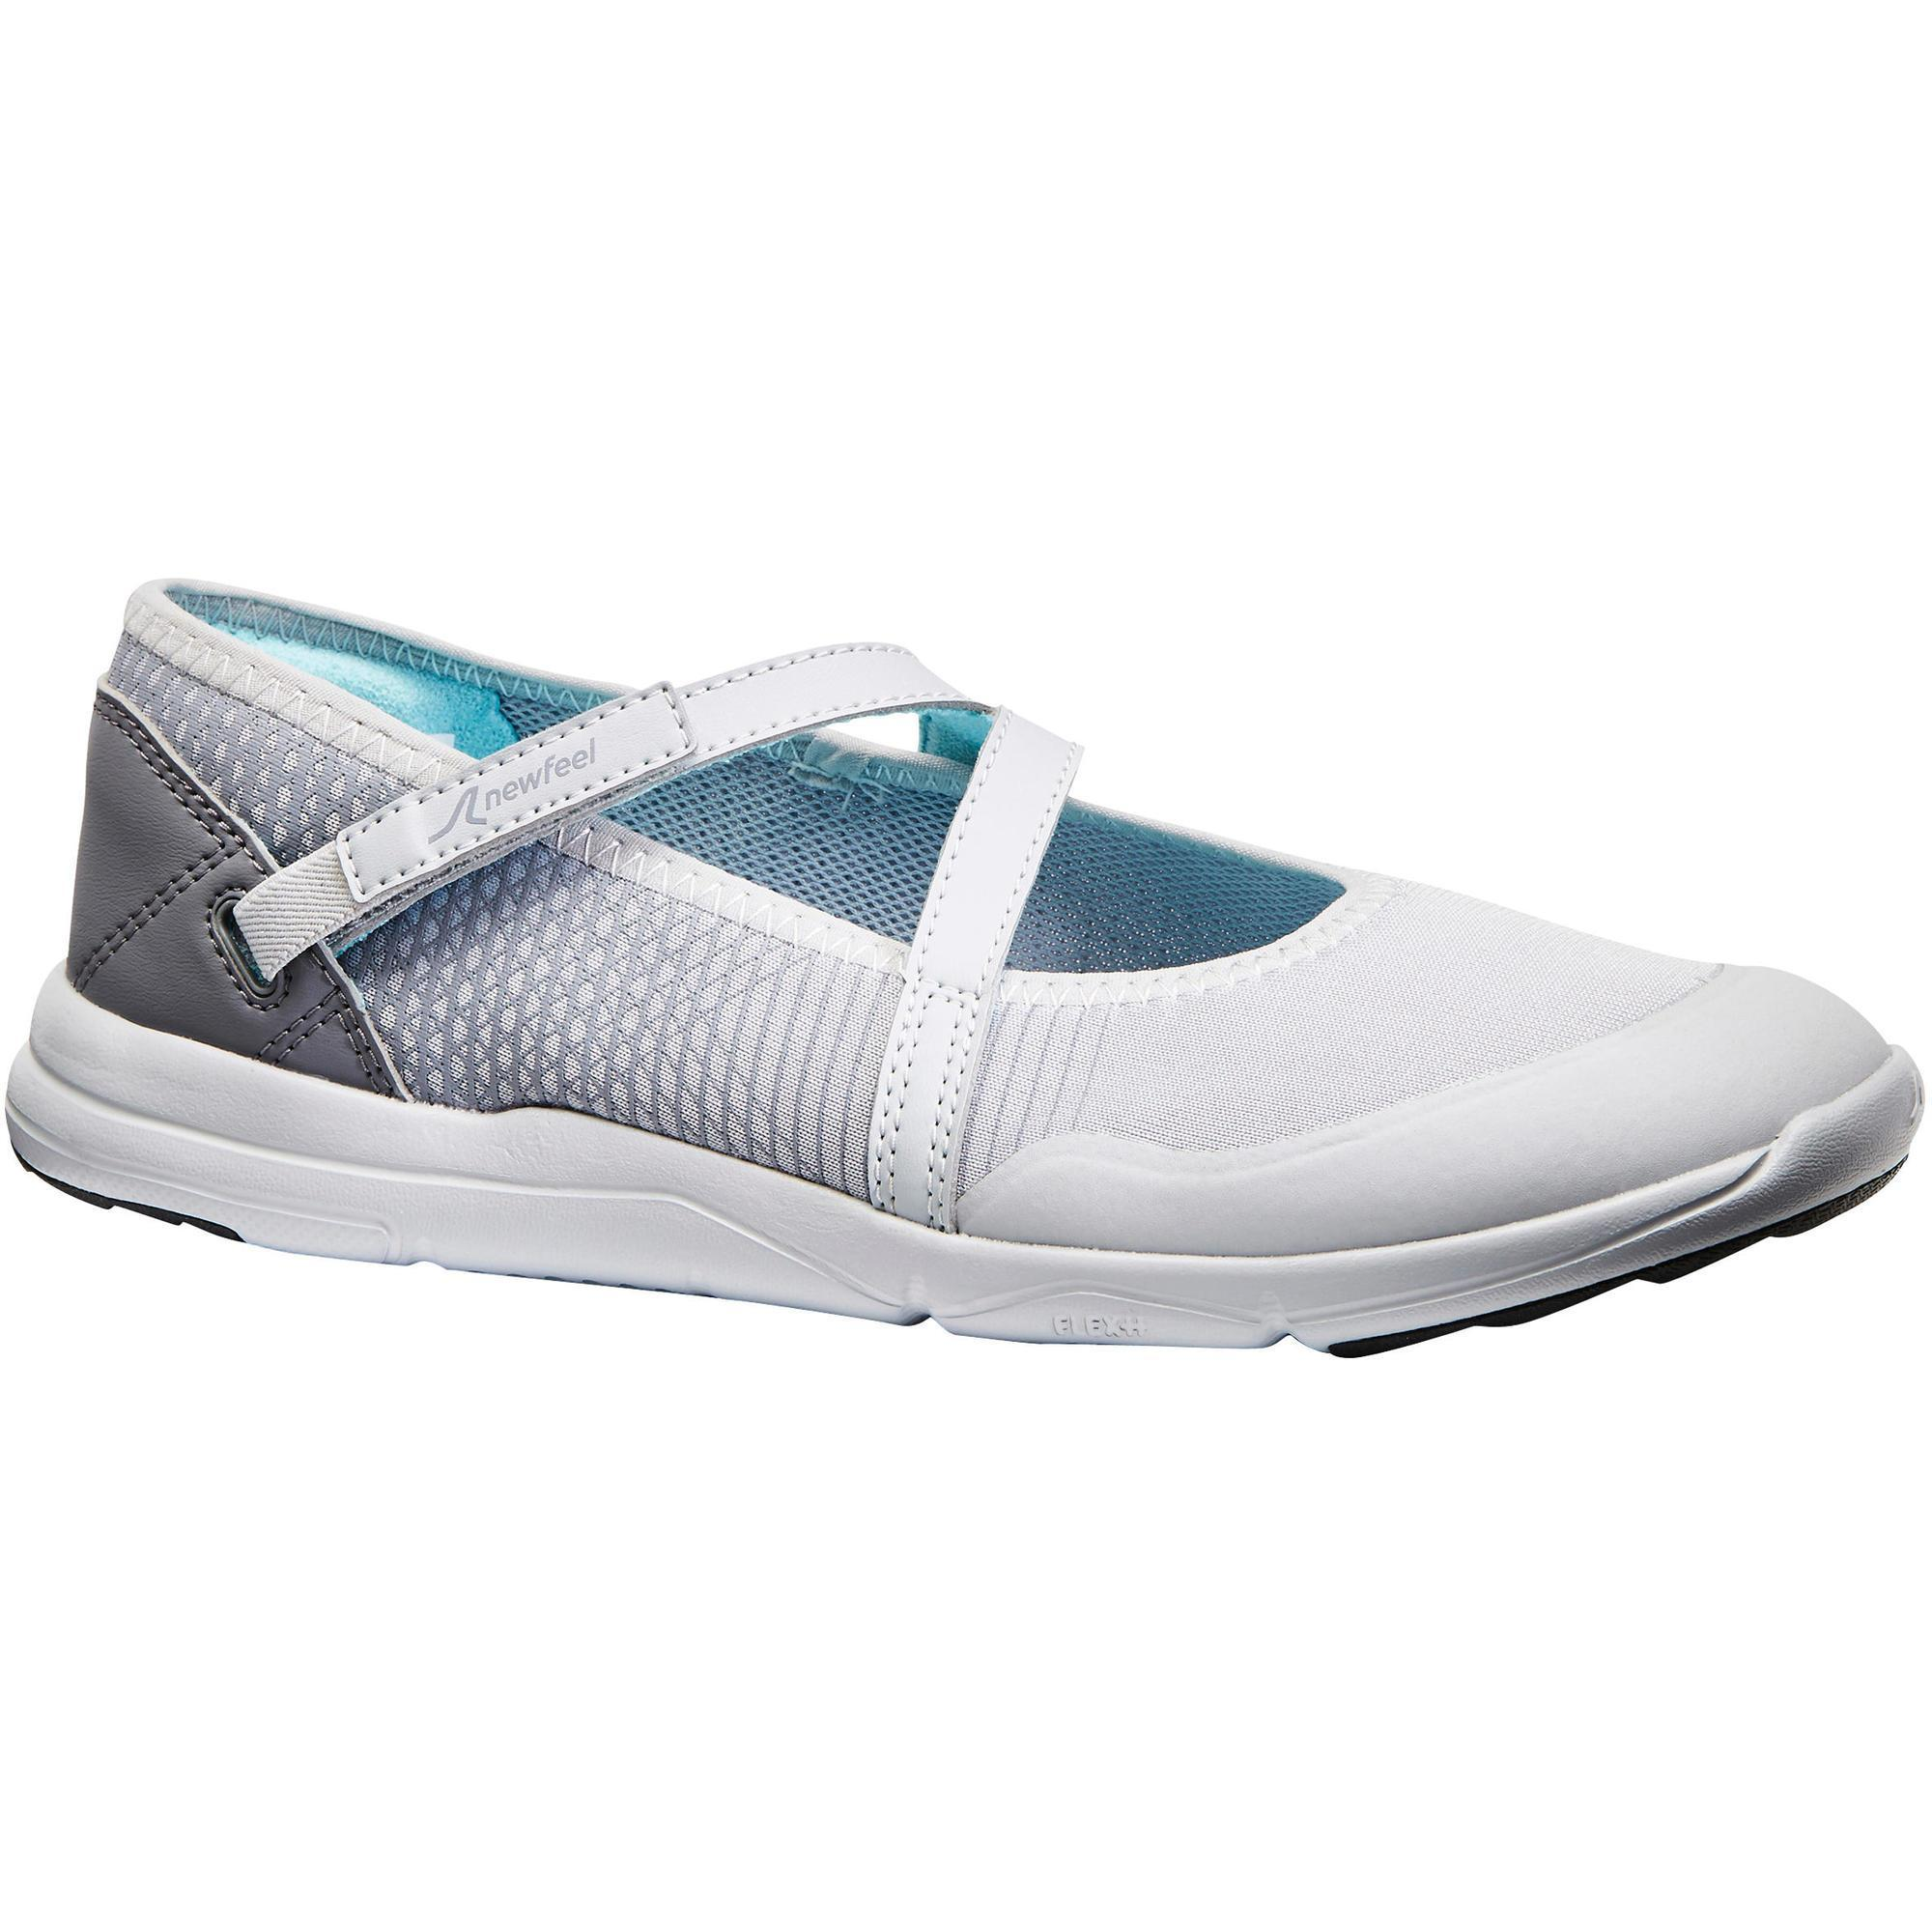 PW 160 Br'easy women's fitness walking pumps light grey/turquoise